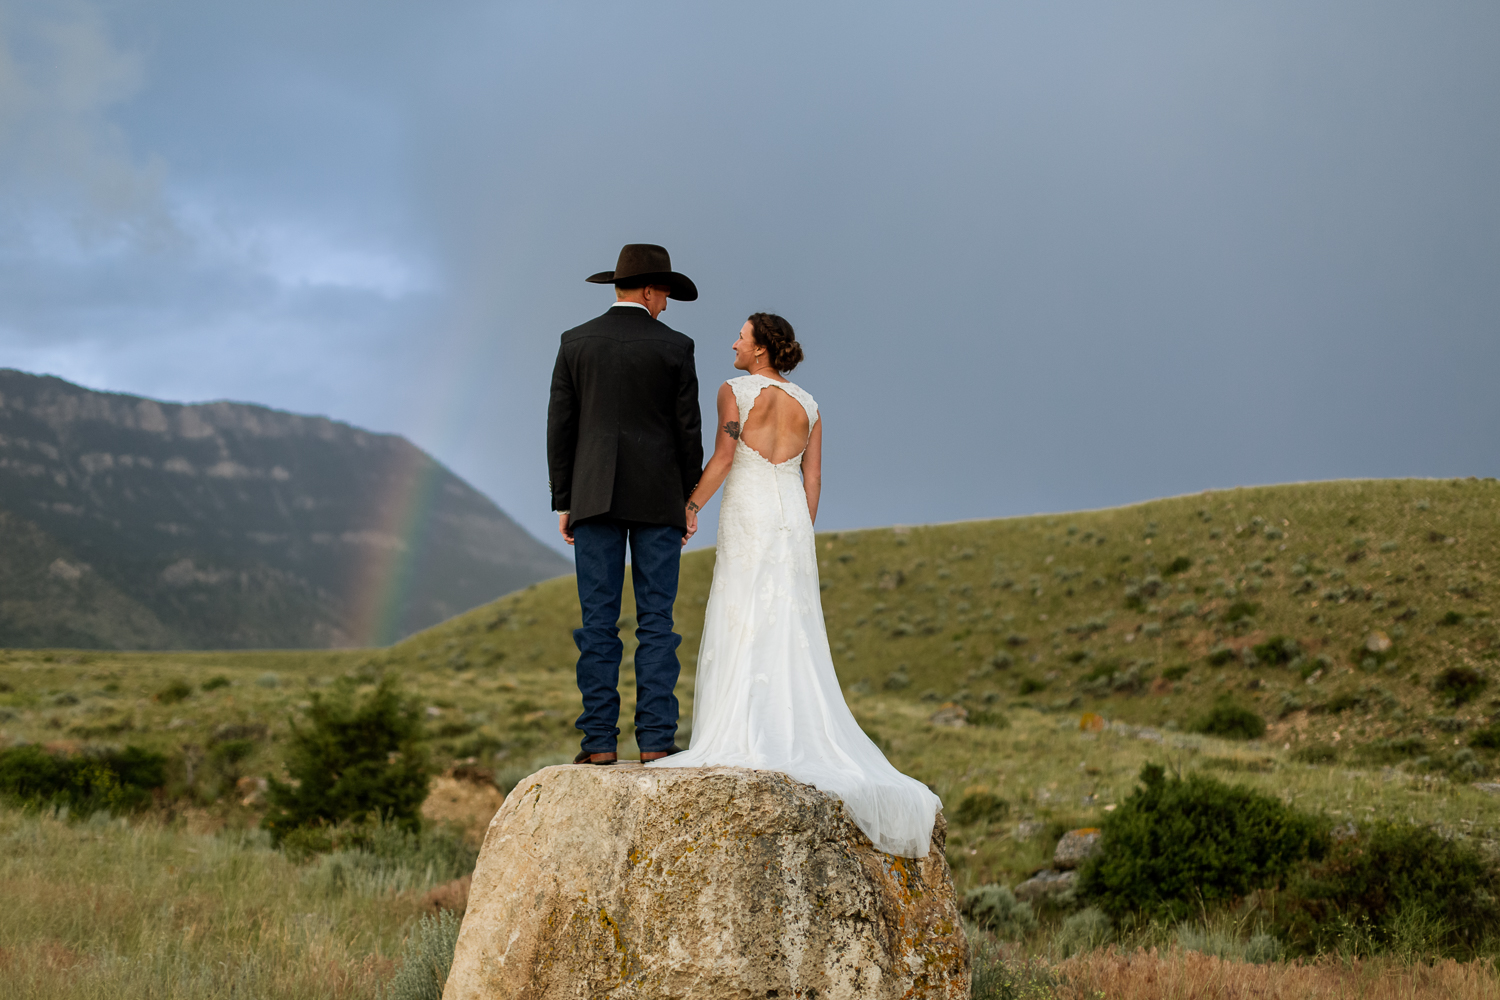 elements-of-light-montana-rainbow-wedding.jpg